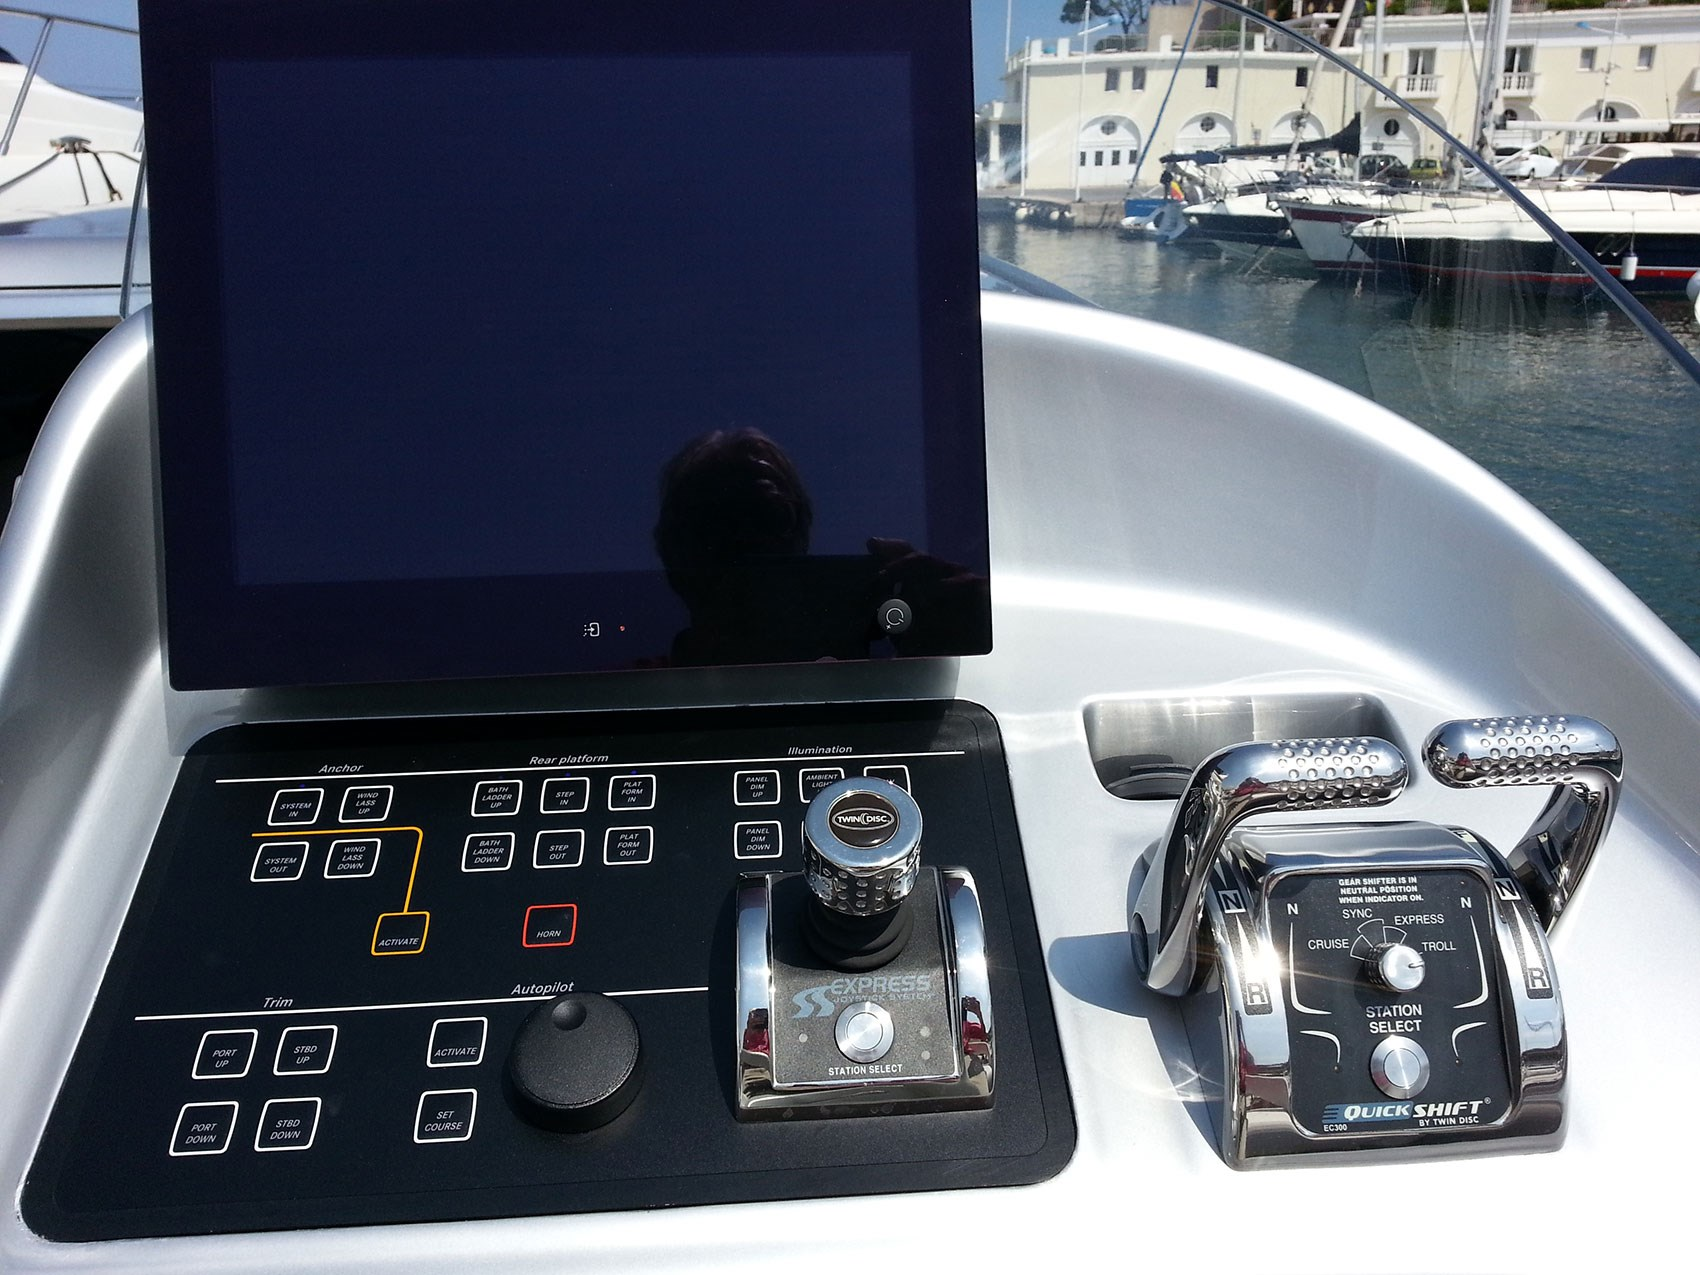 The Mercedes yacht controls